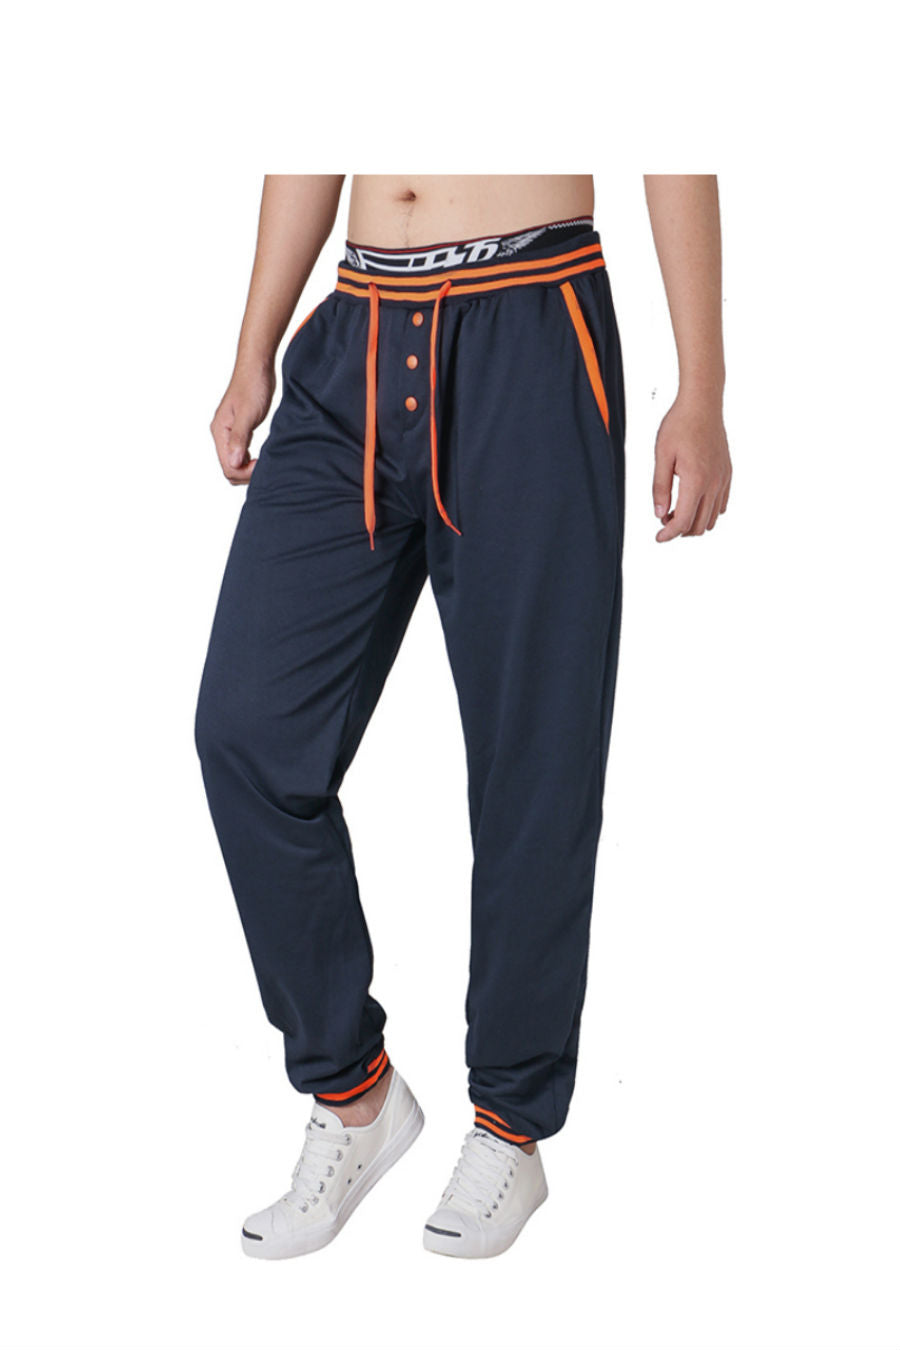 Navy Drawstring Leisure Pants